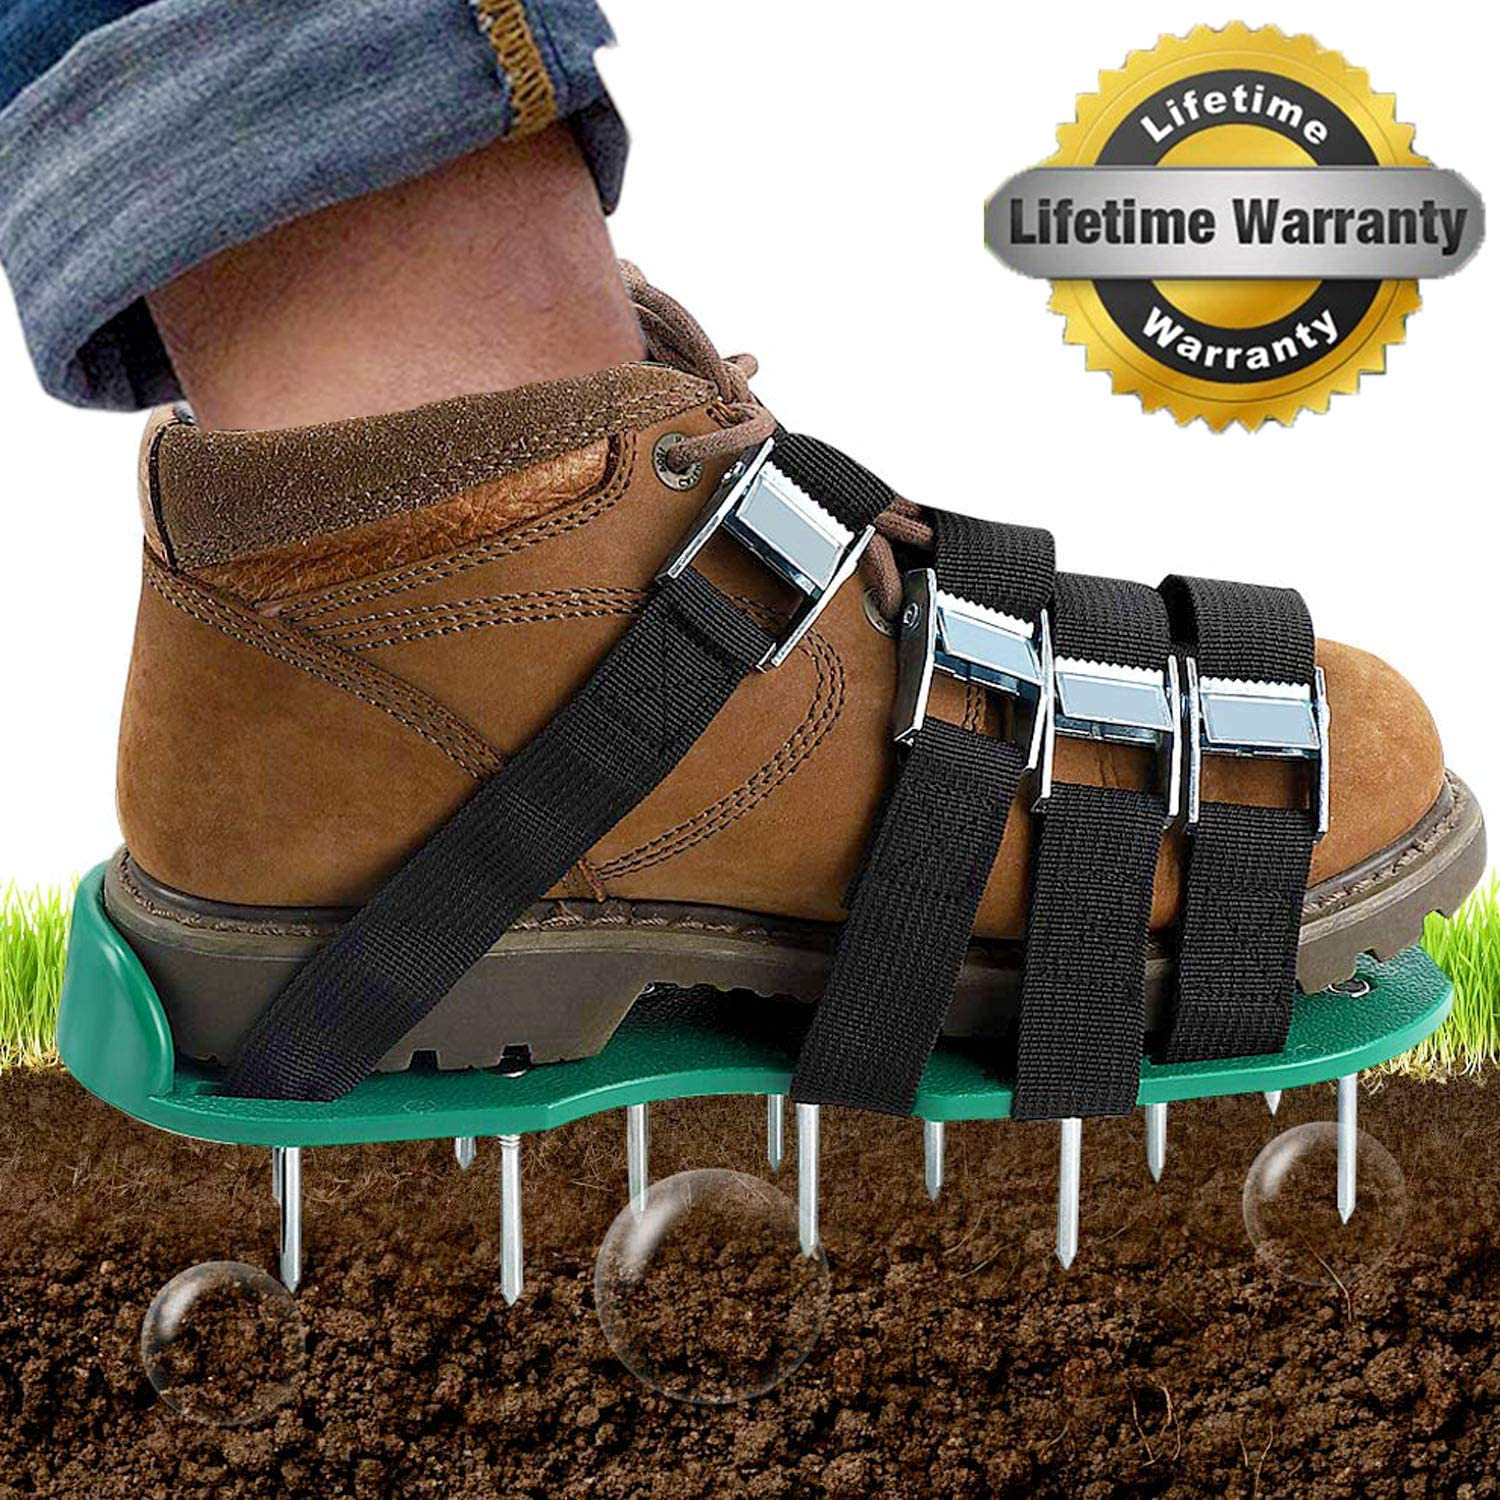 Dripex Lawn Aerator Spike Shoes -with 26 Spikes and 4 Adjustable Straps Heavy Duty Lawn Aerator Sandal Includes Garden Work Gloves for Aerating Your Lawn or Yard